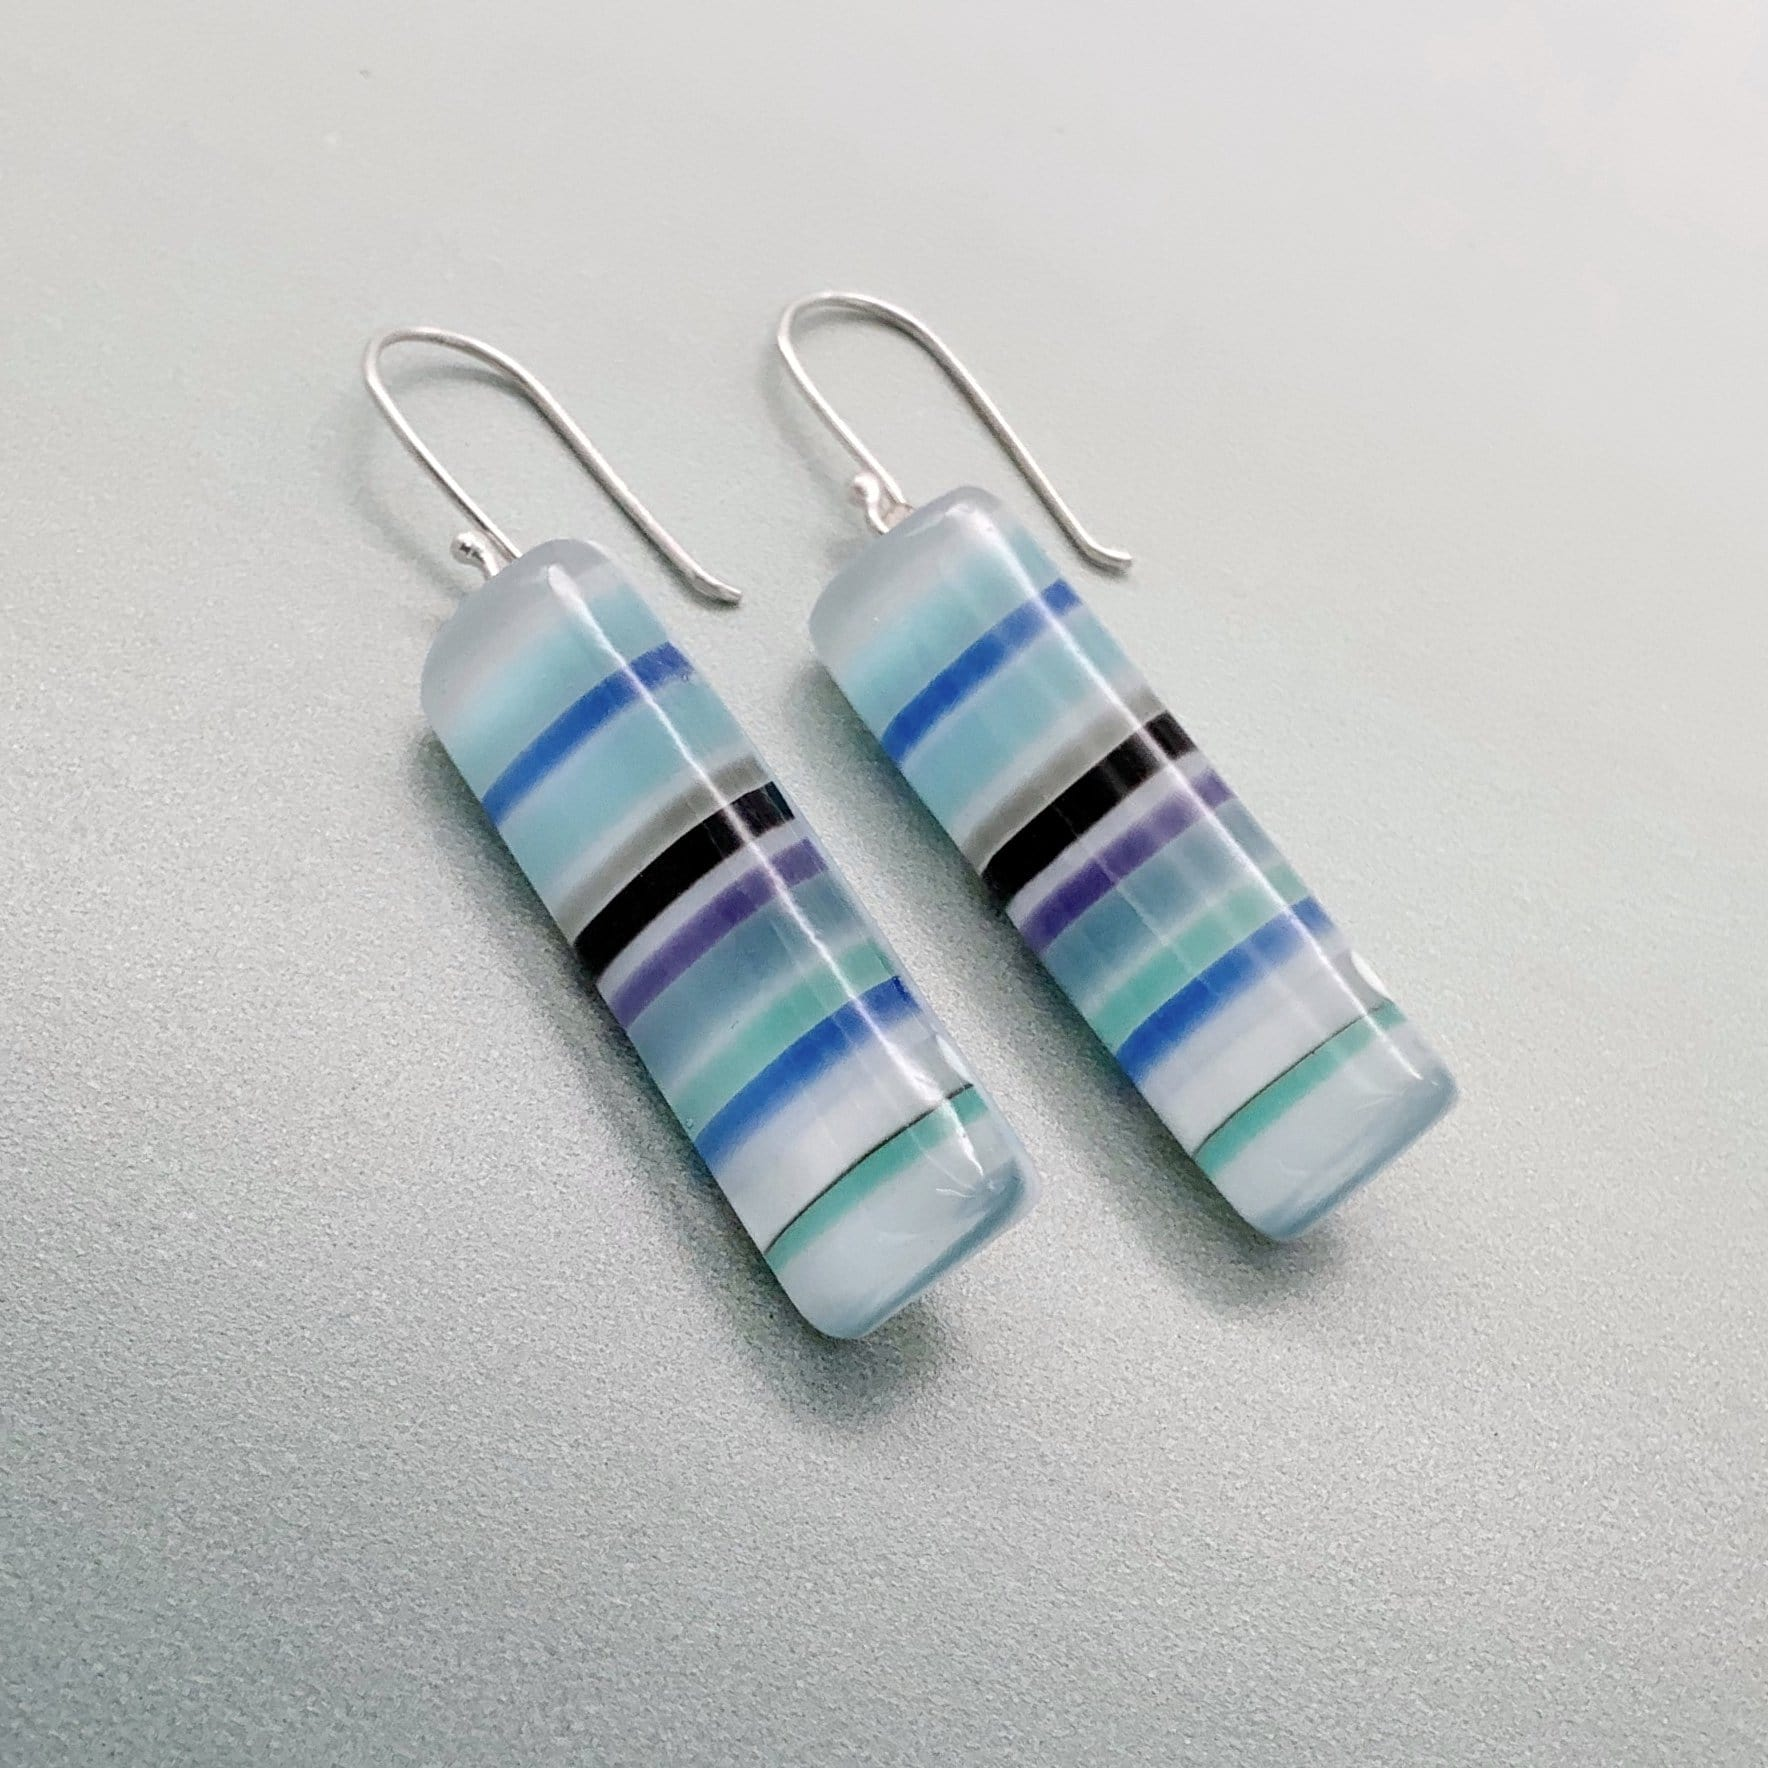 Sweetie long glass dangle earrings - Blueberry